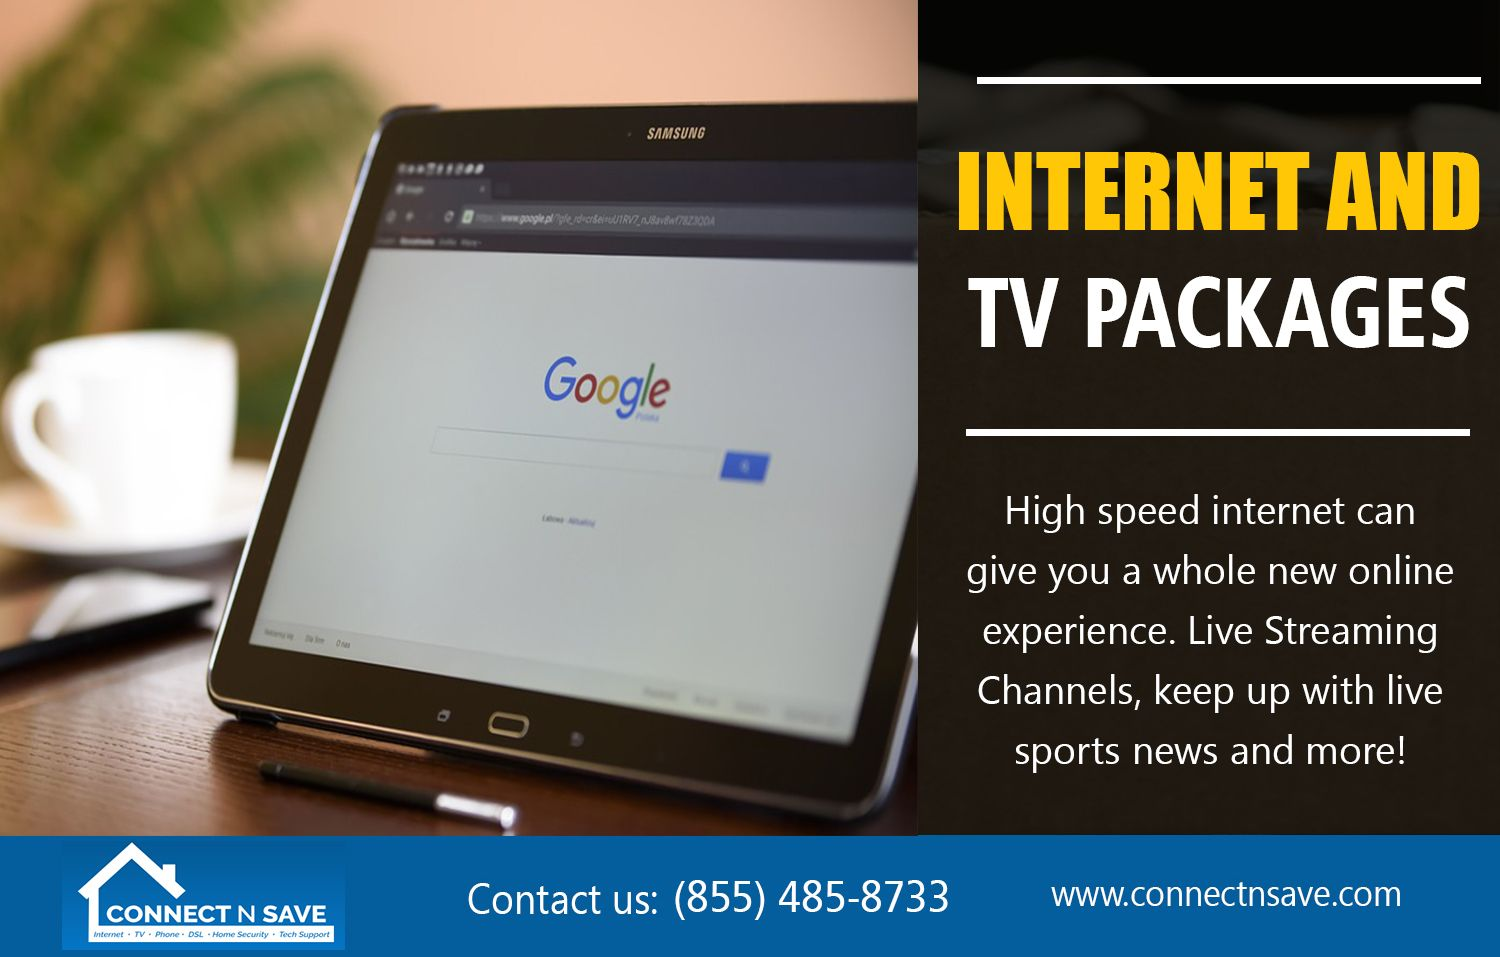 Internet And TV Packages to meet your needs at a price you